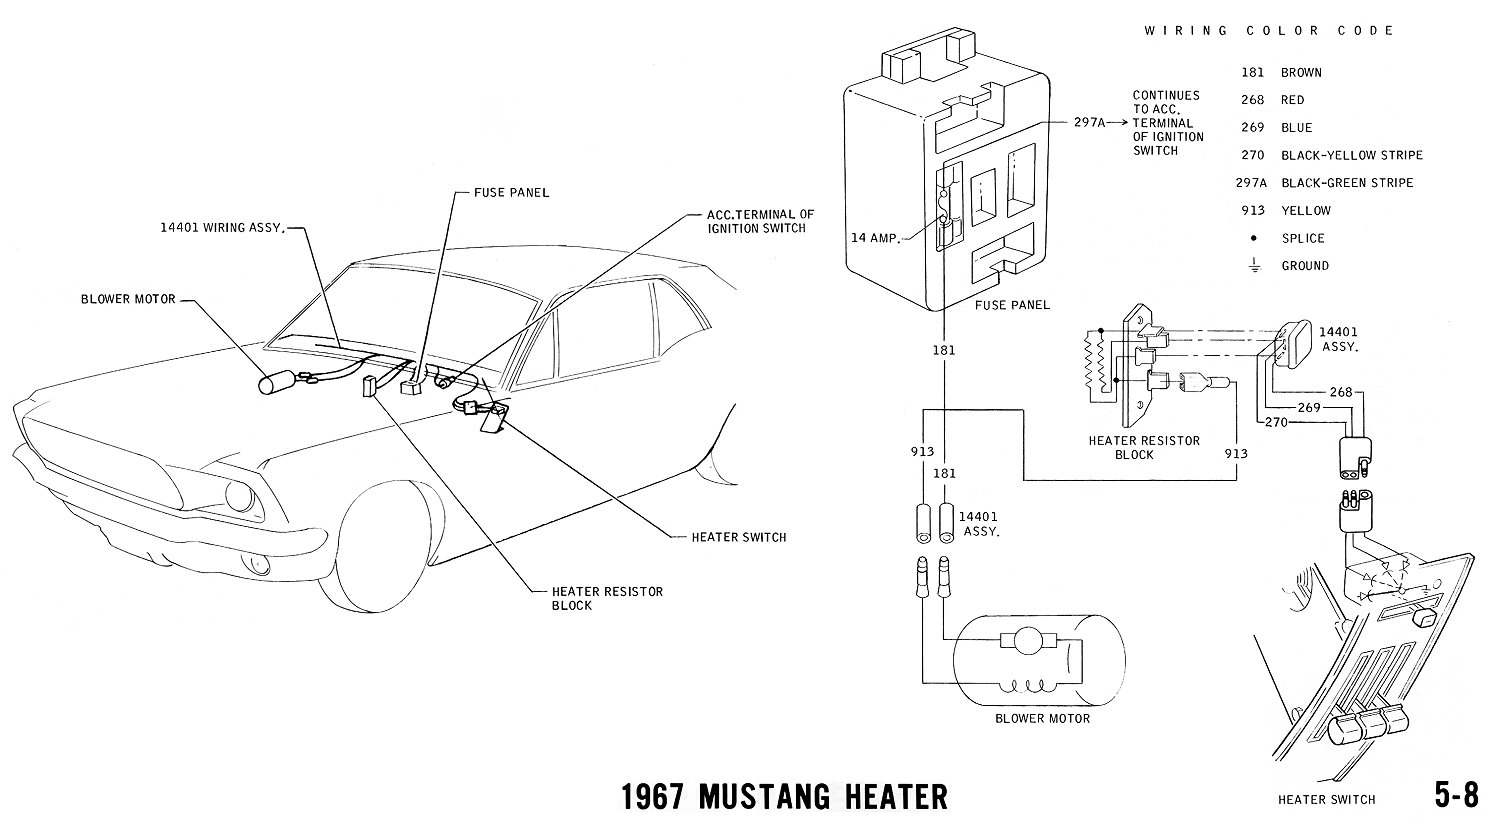 67heater 1967 mustang wiring and vacuum diagrams average joe restoration 1966 ford mustang fuse box replacement at soozxer.org